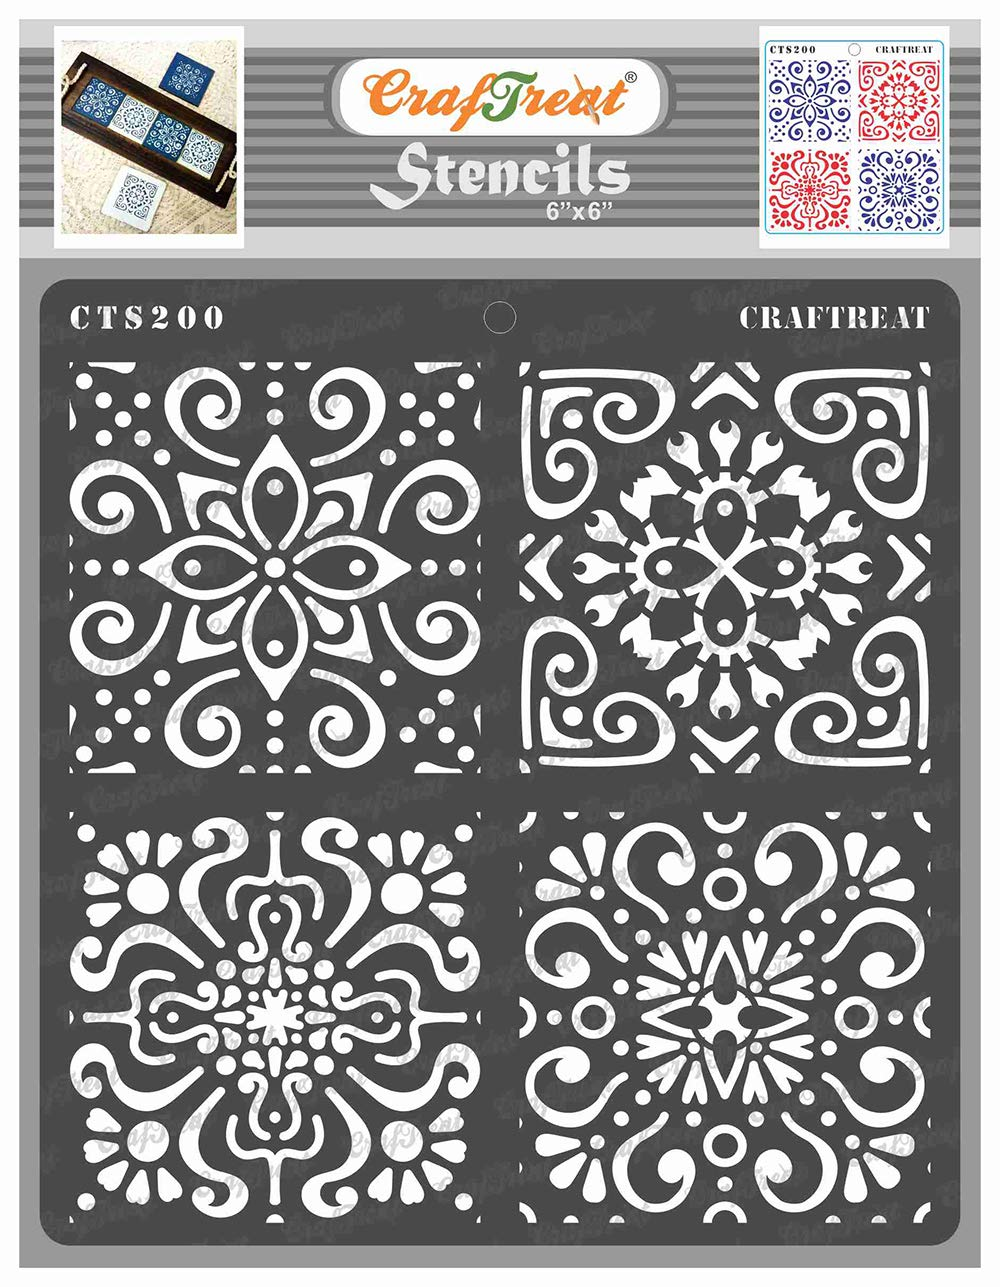 CrafTreat Moroccan Tile Stencils for Painting on Wood, Canvas, Paper, Fabric, Floor, Wall and Tile - Moroccan Tiles - 6x6 Inches - Reusable DIY Art and Craft Stencils - Stencil Tile Pattern